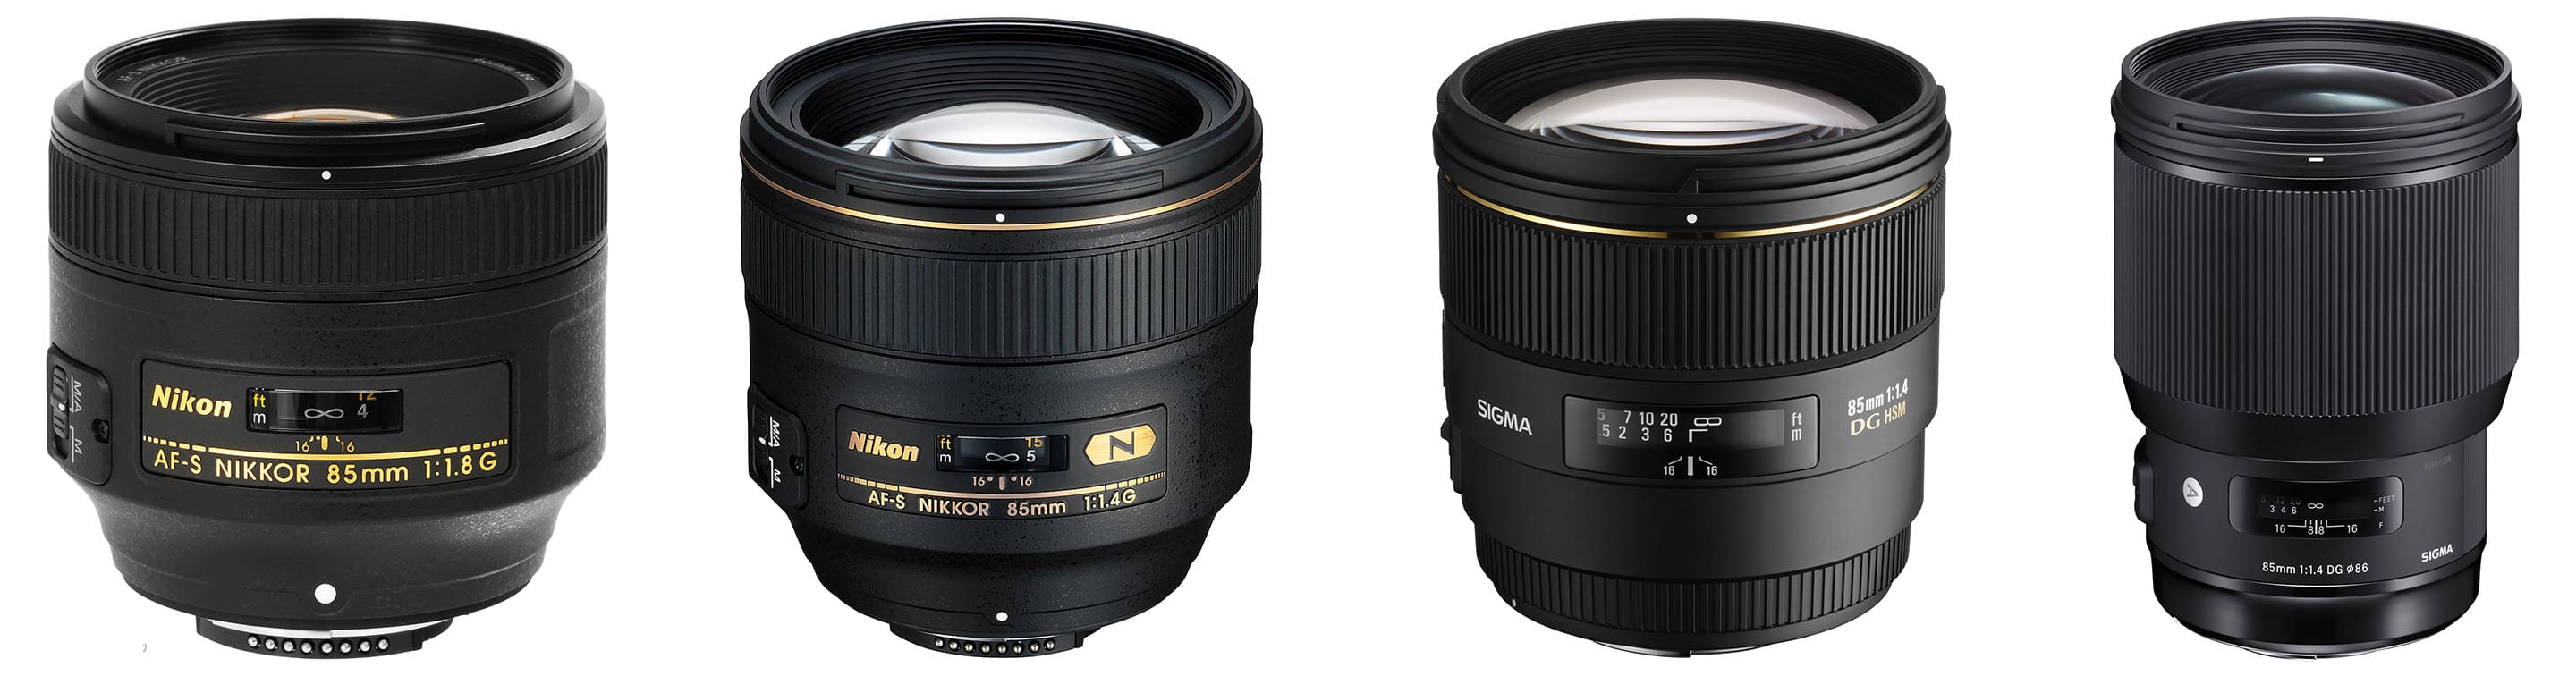 sigma-85mm-art-review-wedding-photography-03